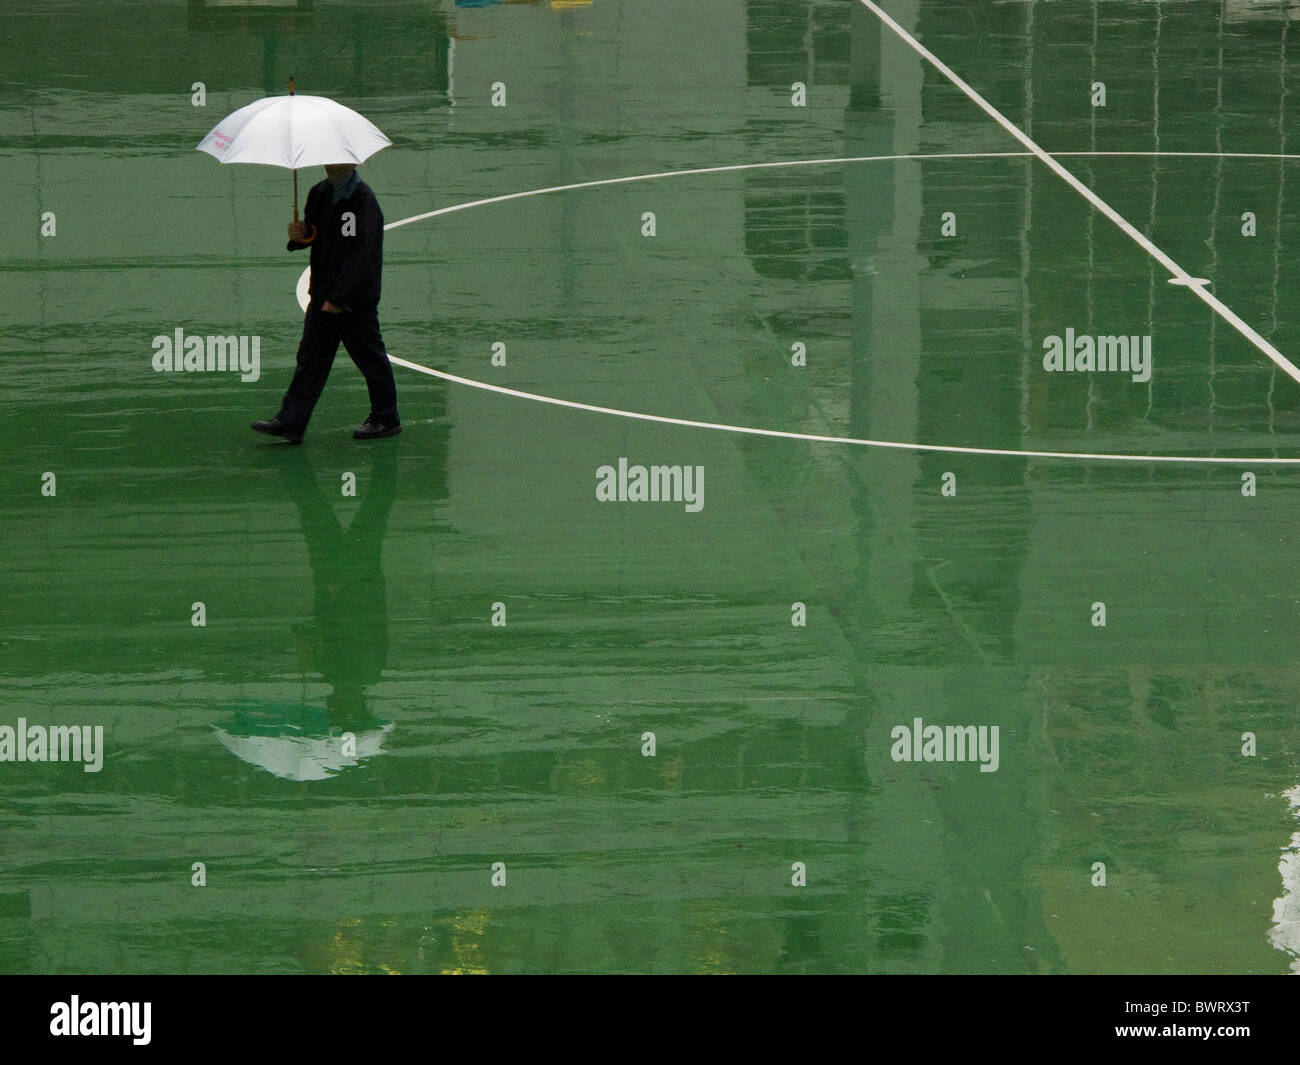 A man with a white umbrella crossing a football pitch in the rain in Hong Kong - Stock Image